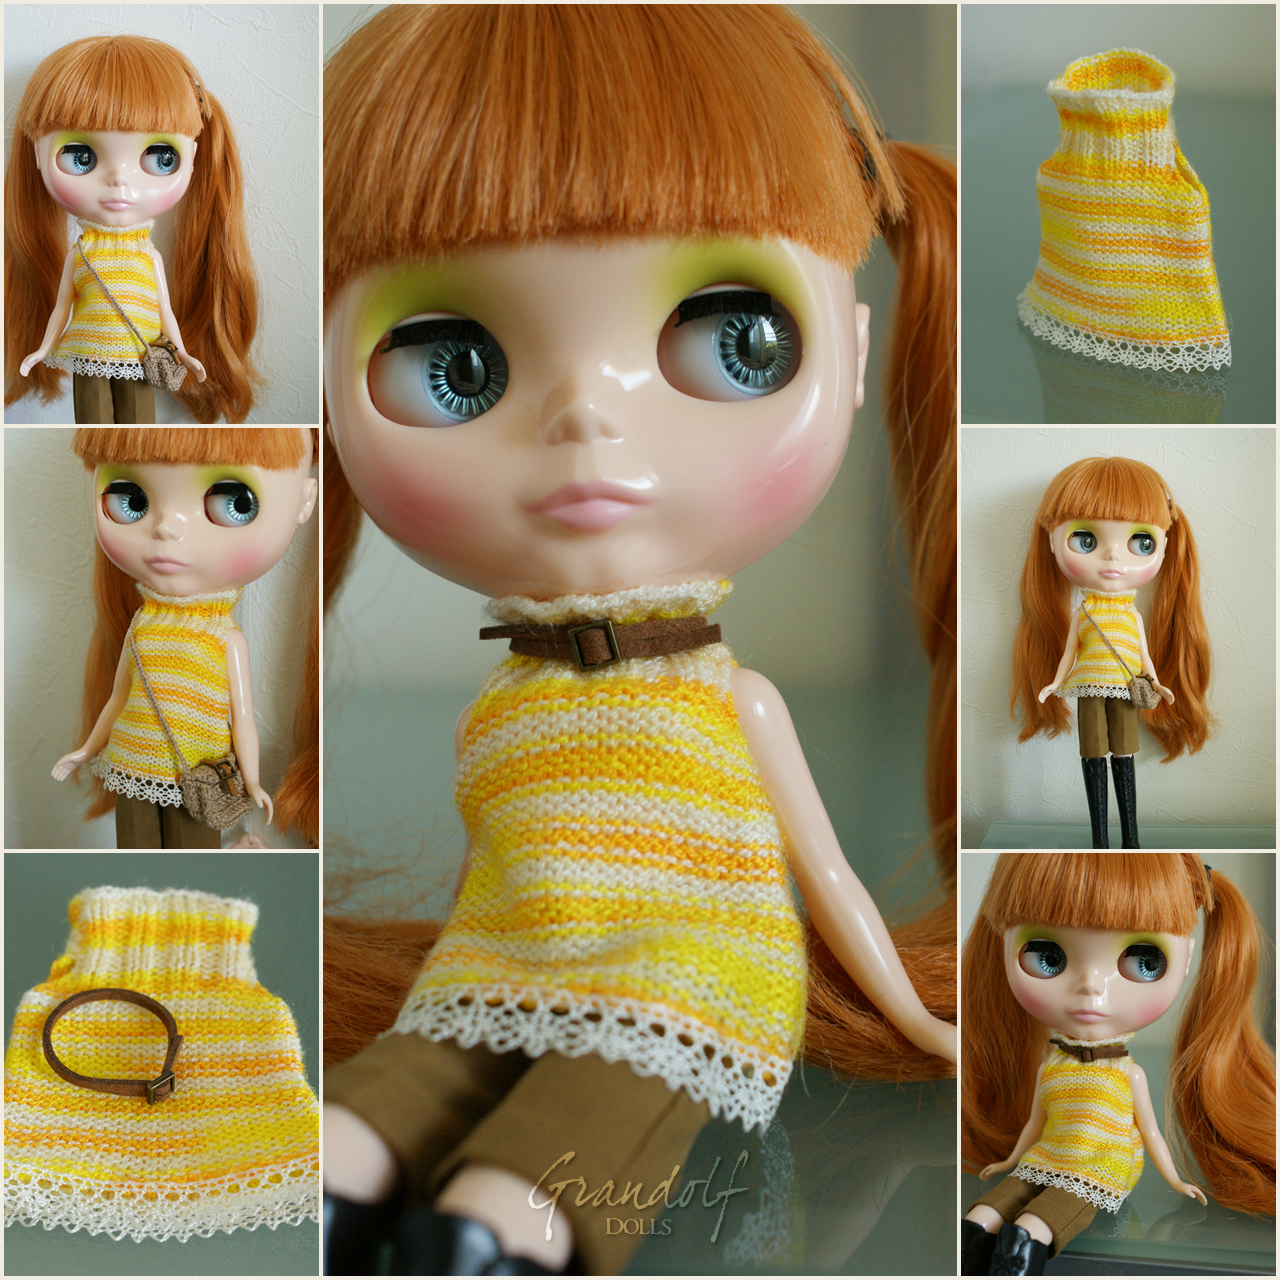 GRANDOLF Dolls knit 001